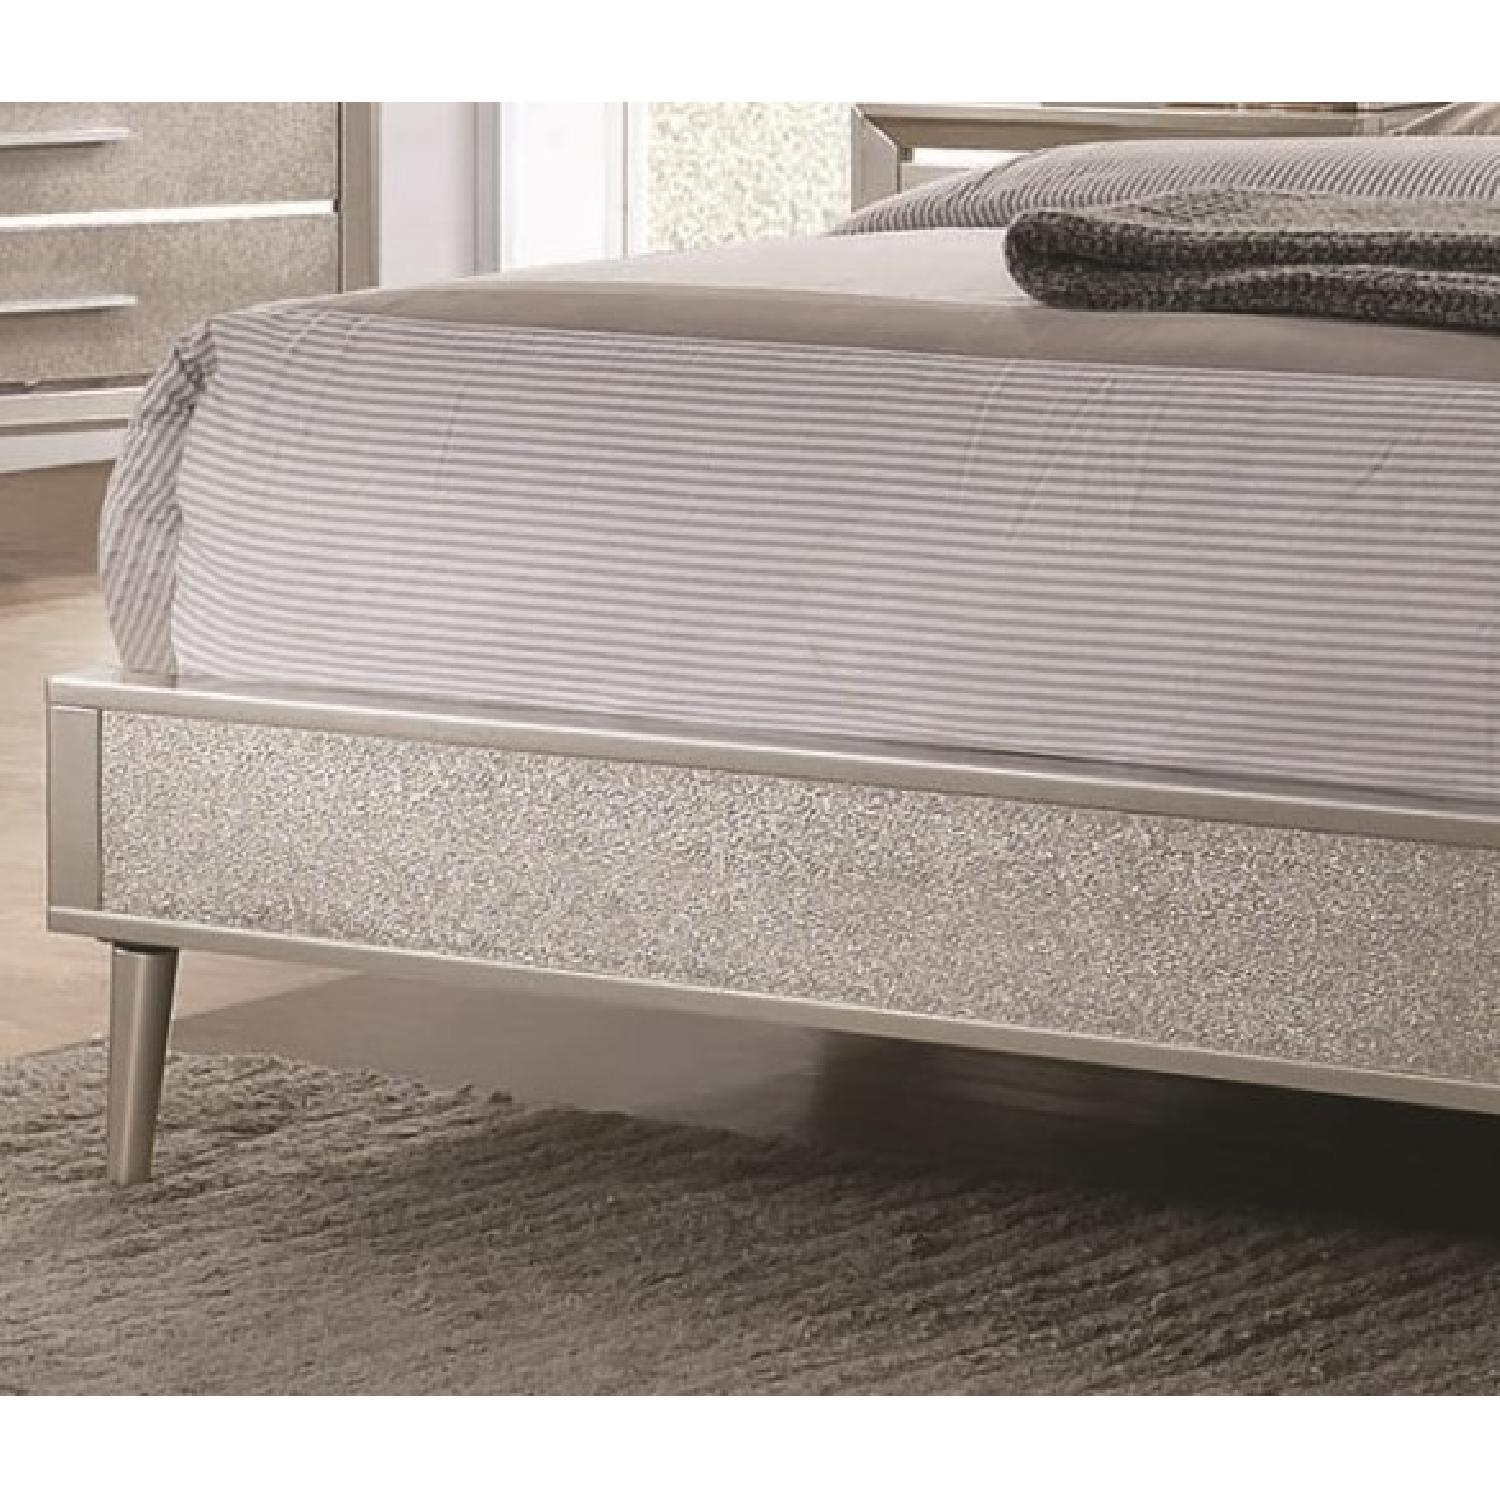 Mid Century Style King Bed in Metallic Silver Glitter Design - image-11